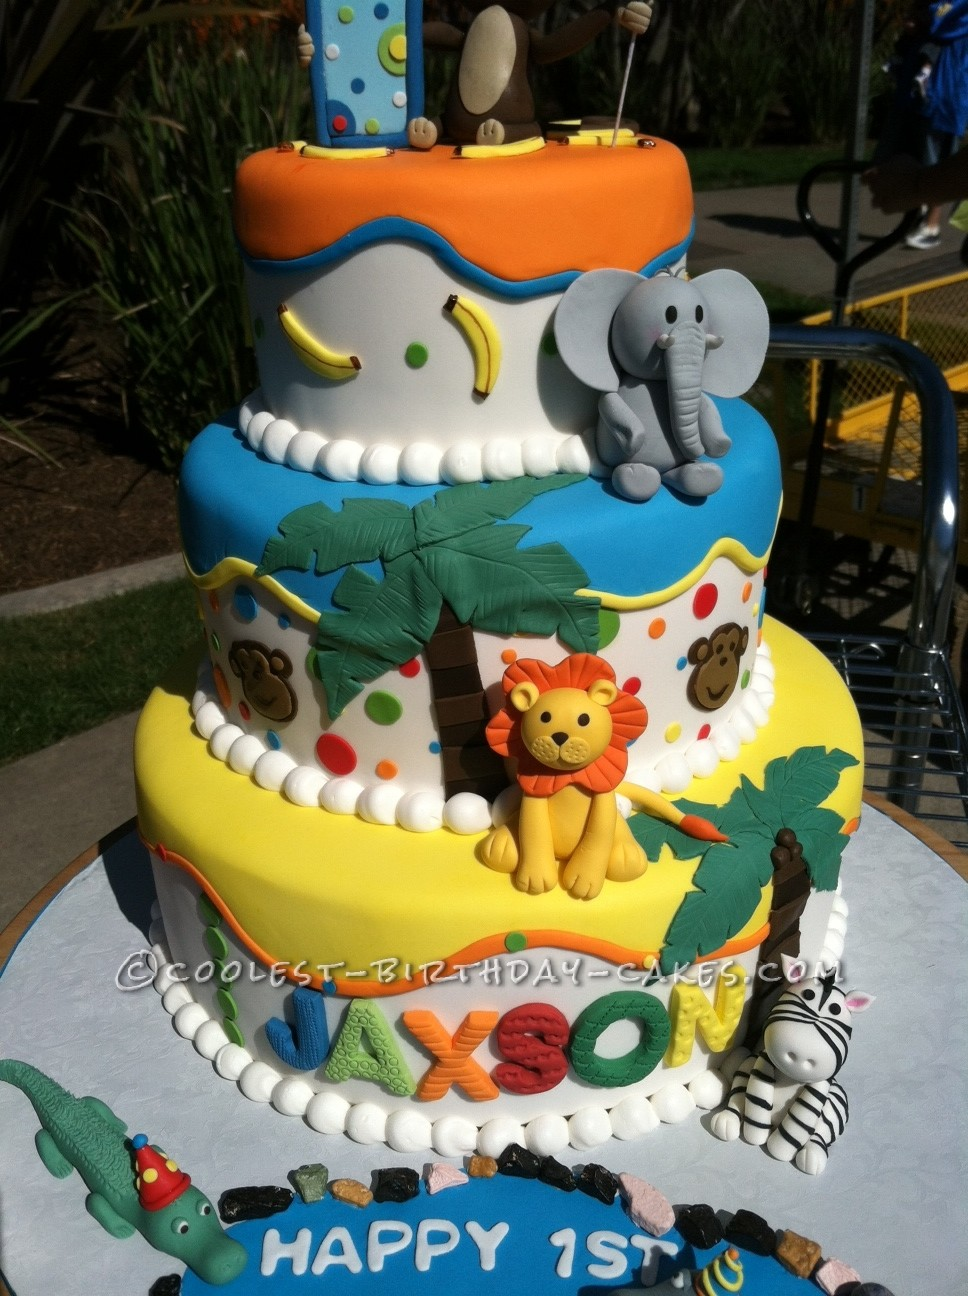 Coolest Zoo-Themed Birthday Cake